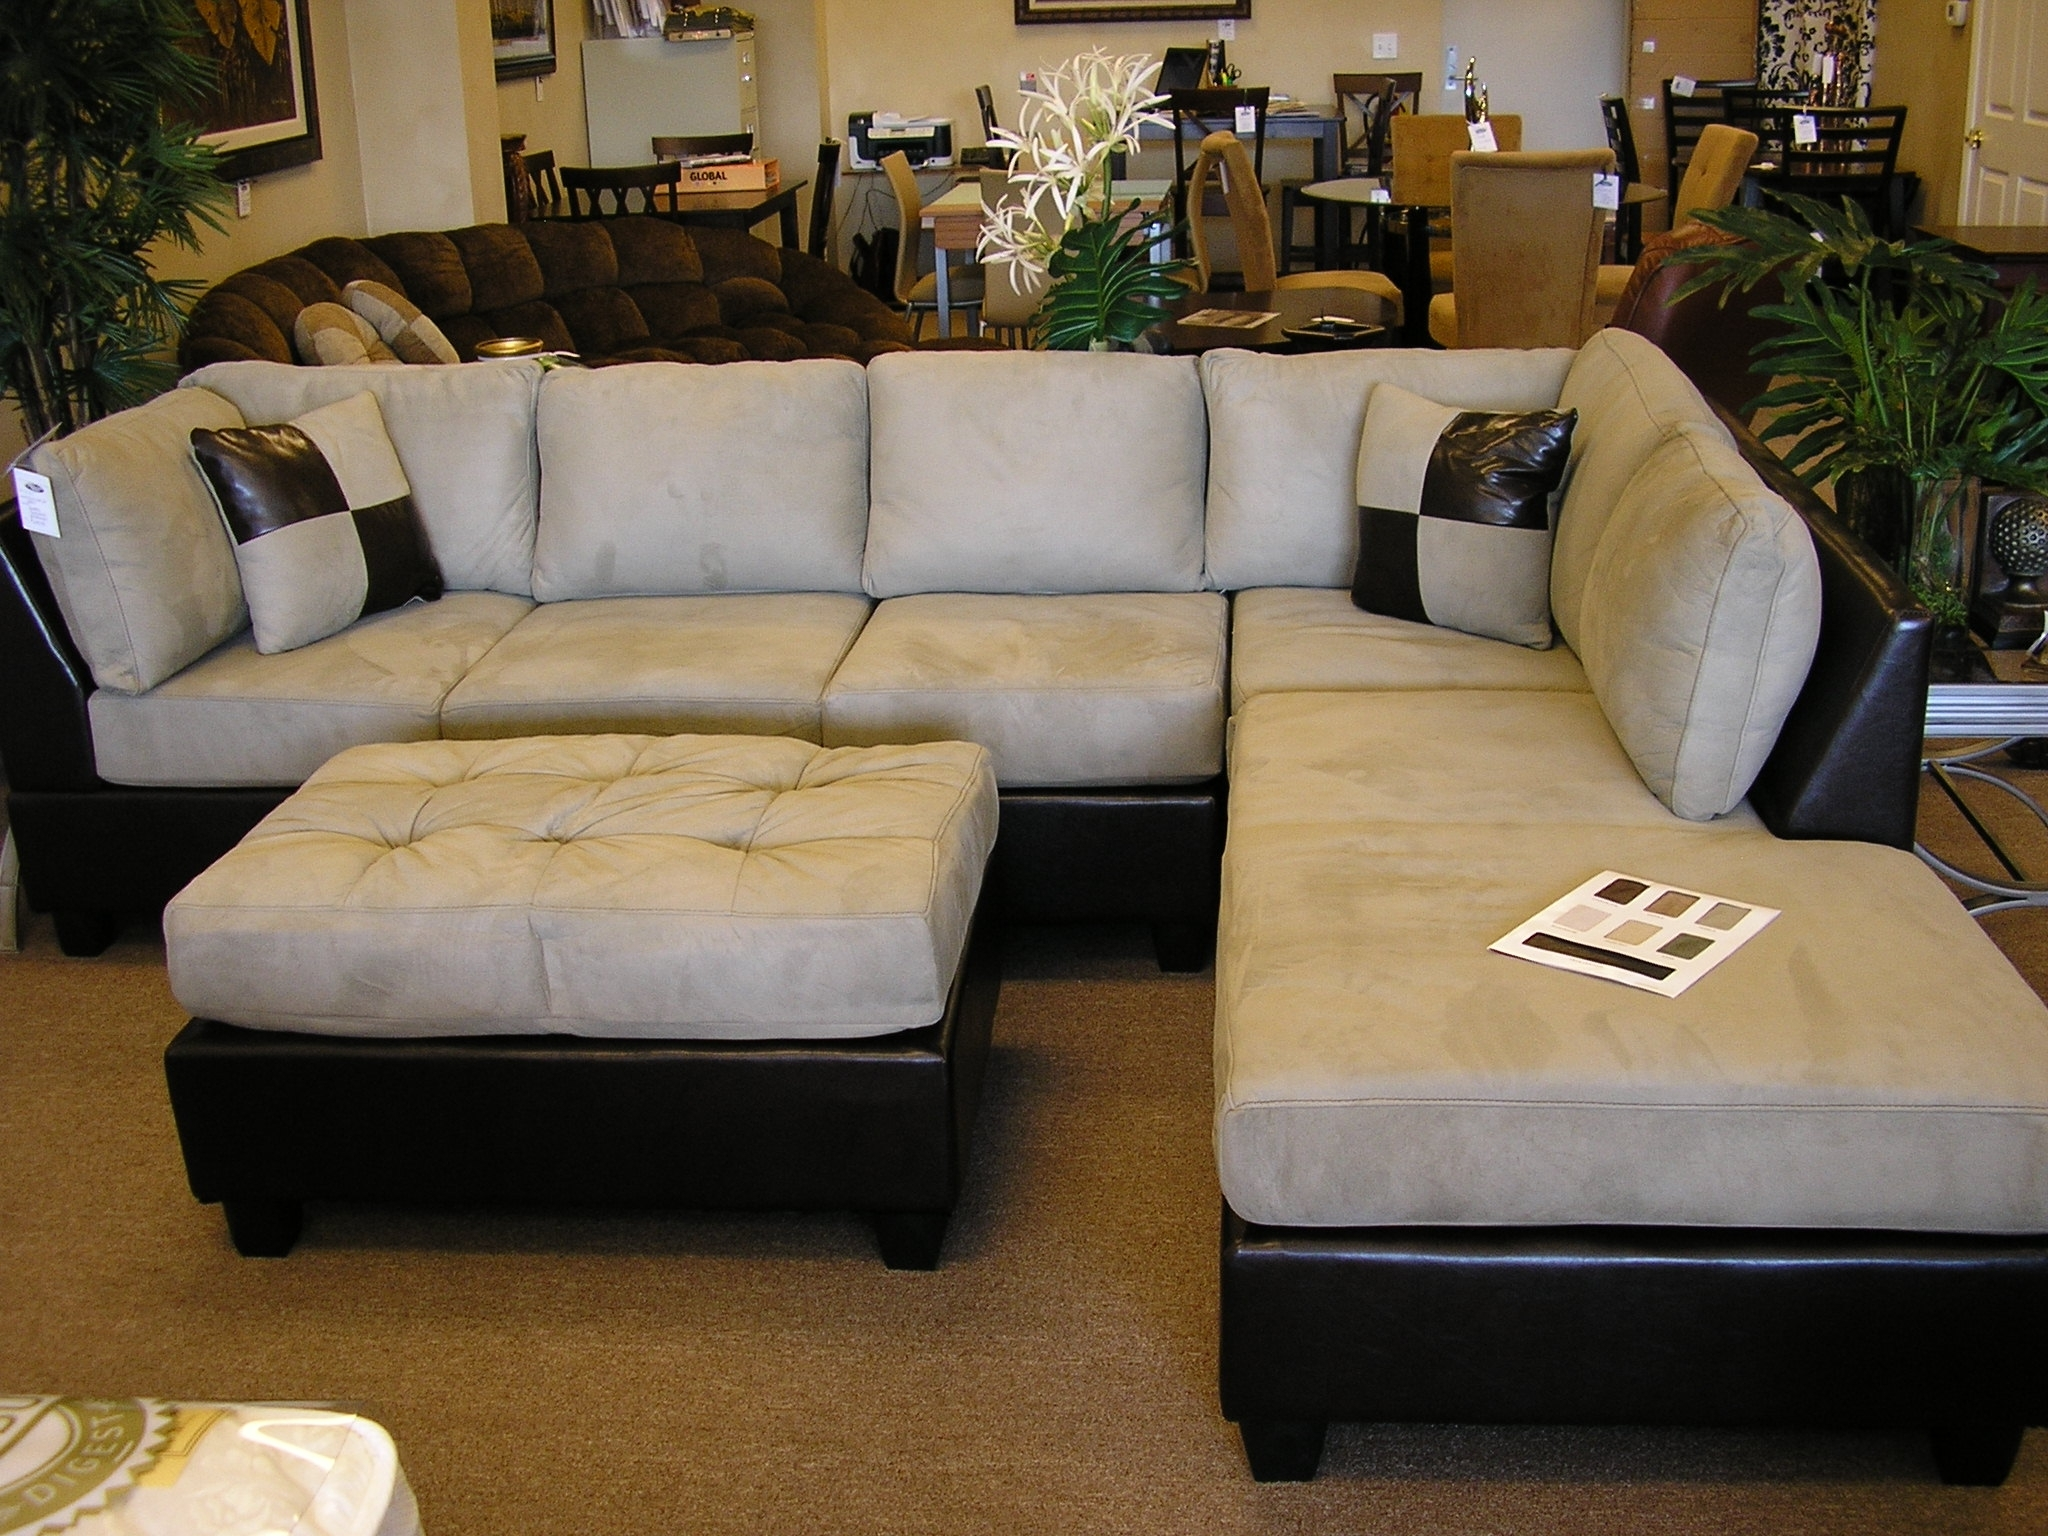 Furniture : Sectional Chaise Lounge Sofa Double Along With Furniture Inside Sectional Sleeper Sofas With Ottoman (View 5 of 15)